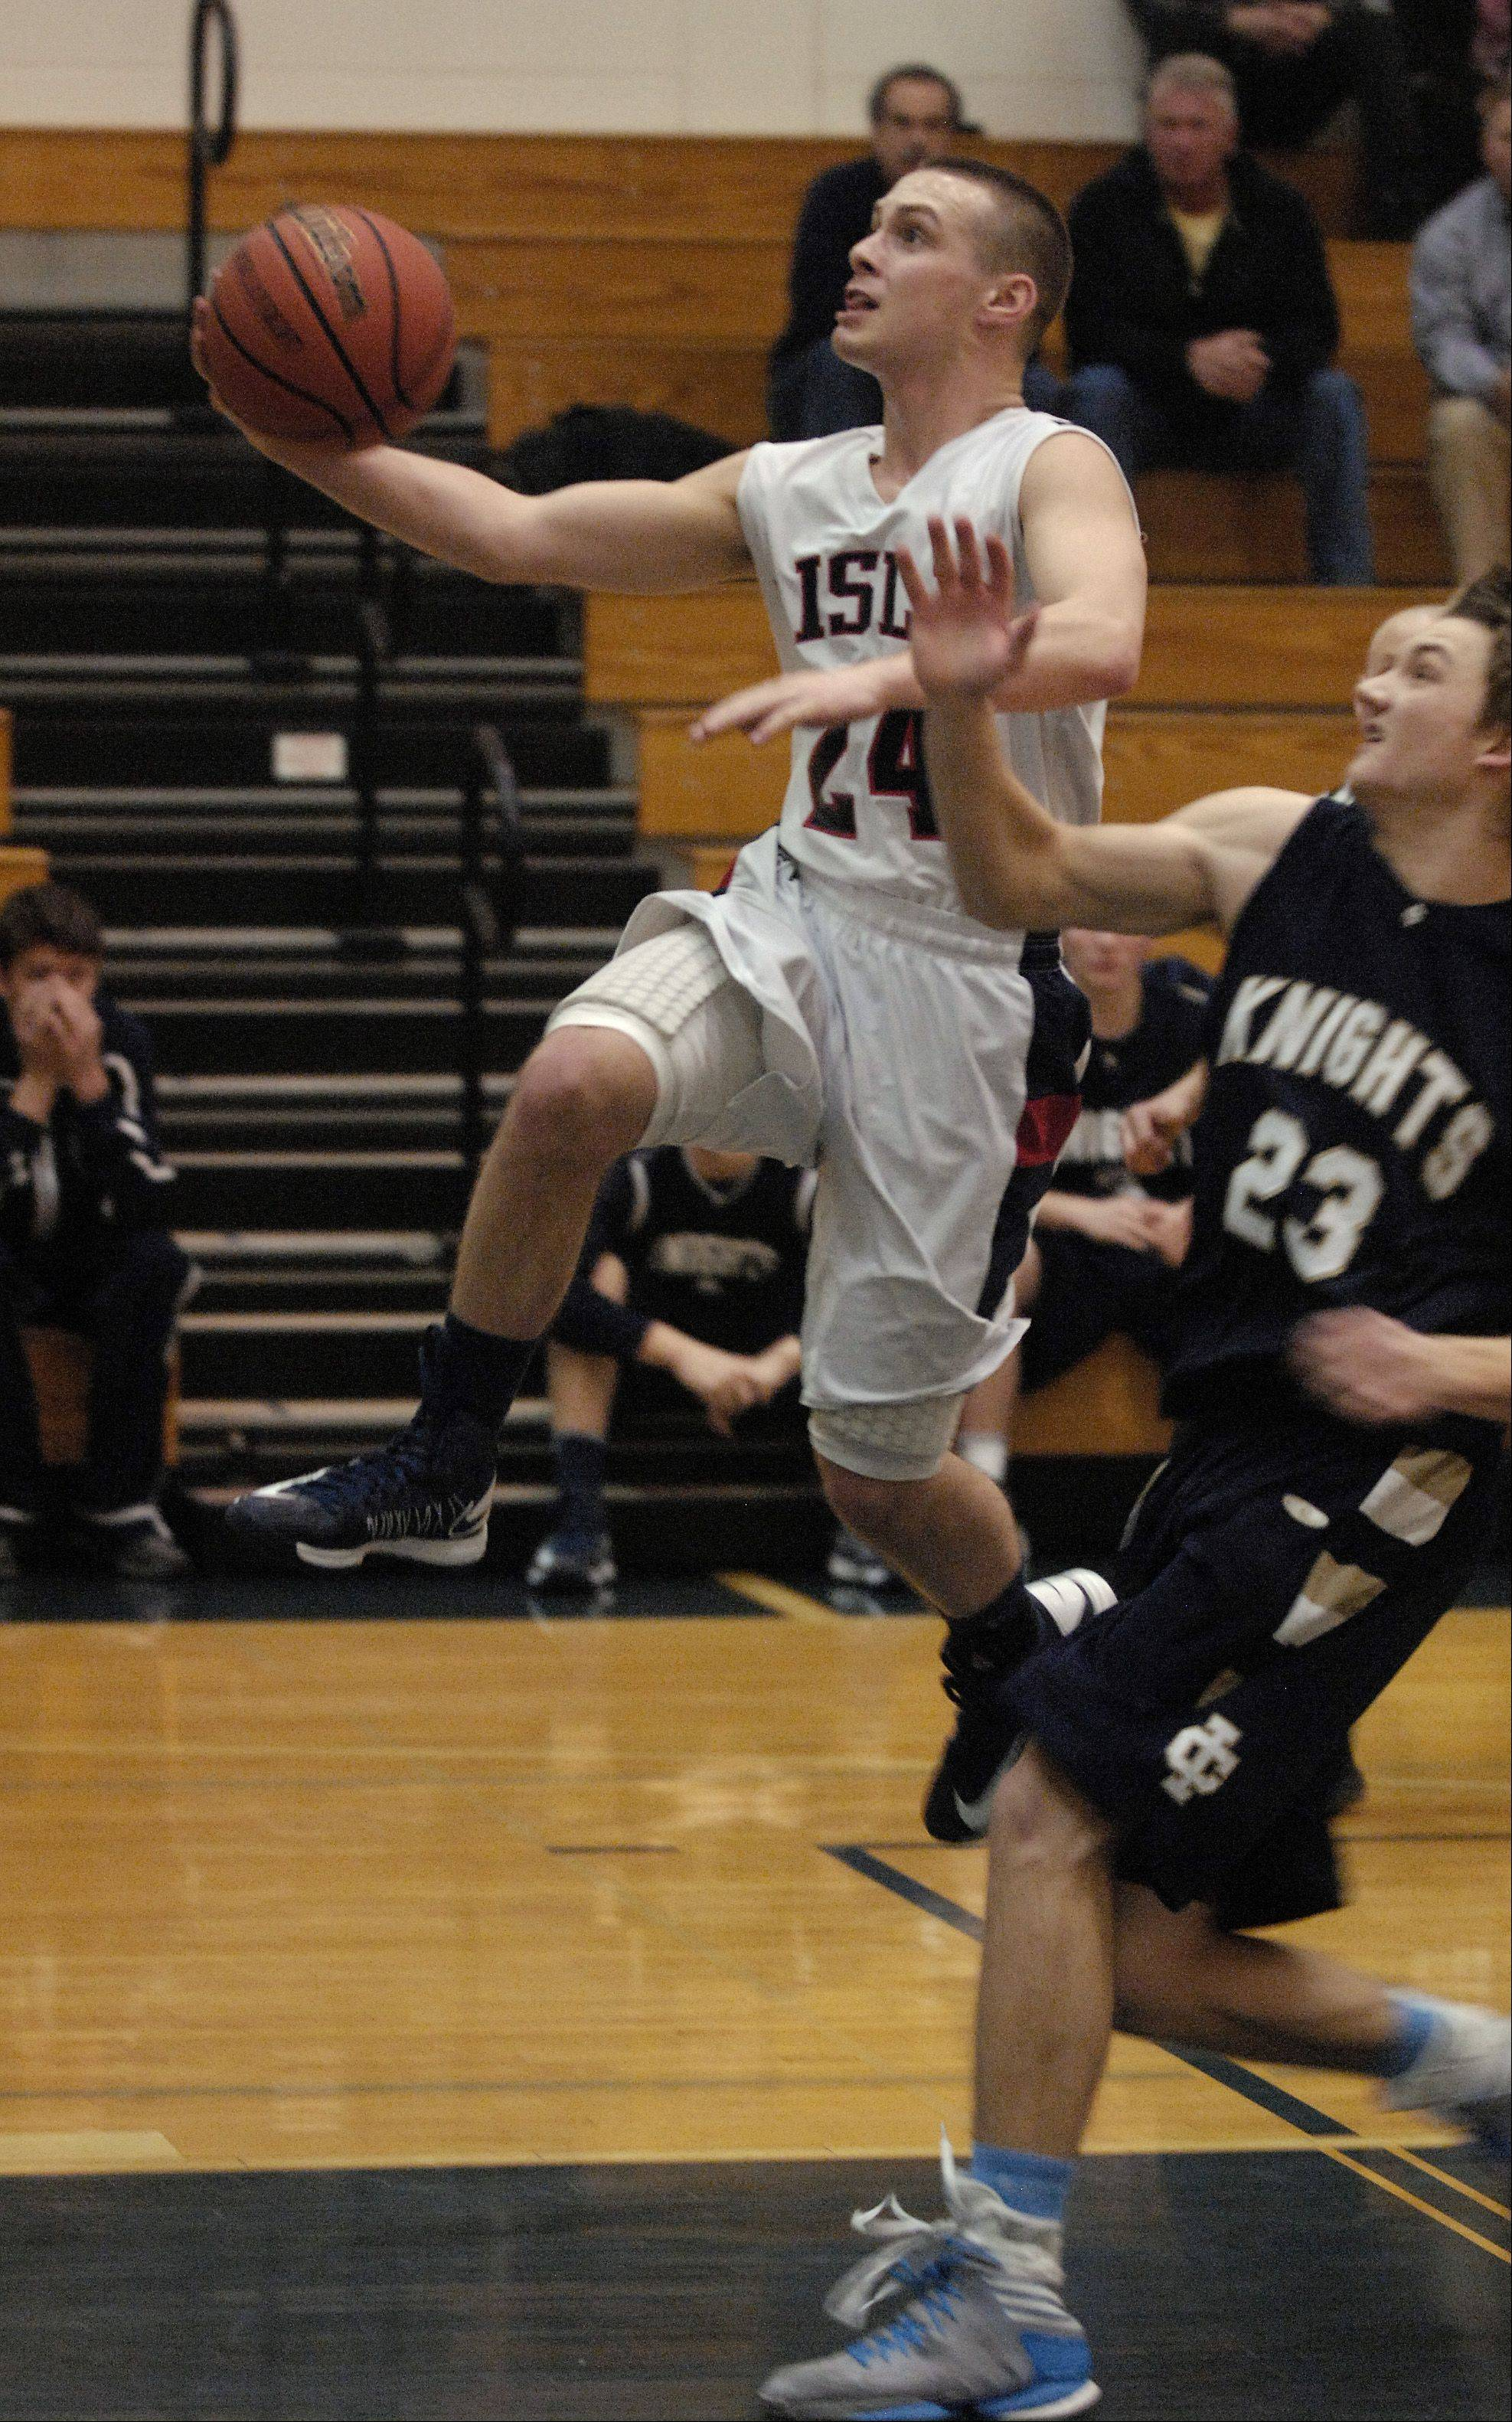 Cody Monson of Lisle High School gets past Clark Brinkman of Immaculate Conception High School.